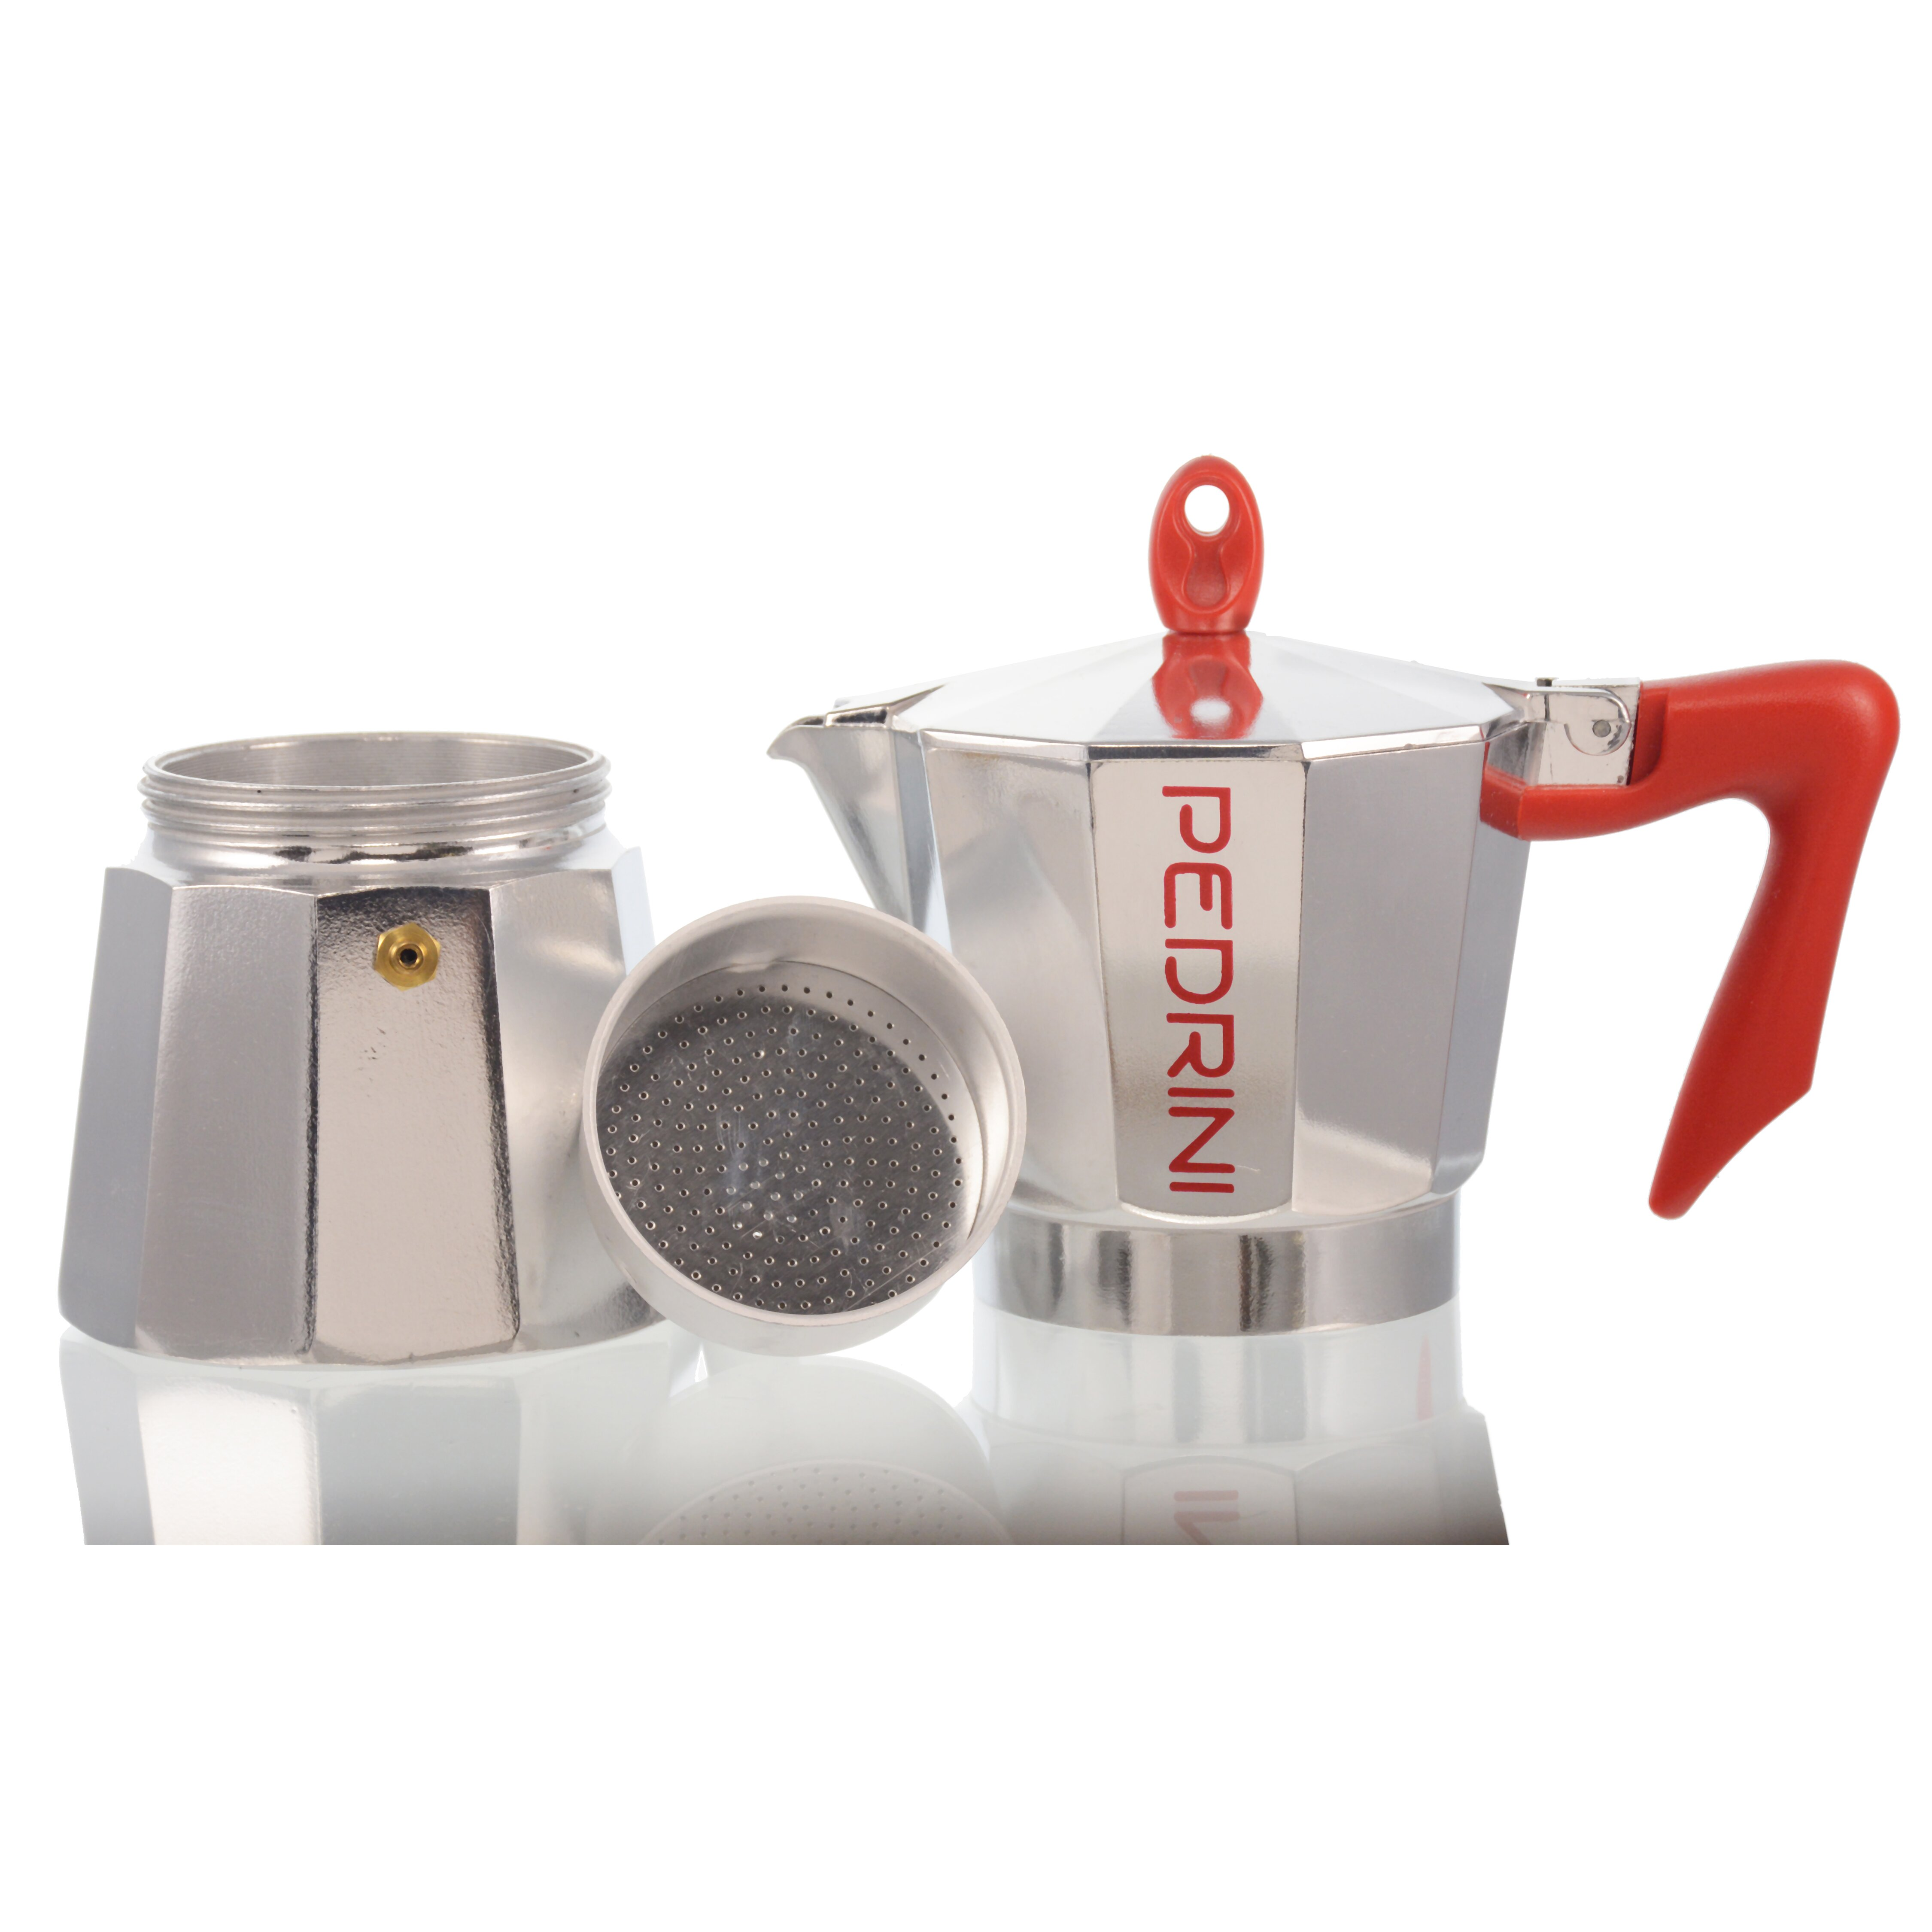 Stovetop Coffee Maker Handle : Grosche International Pedrini Stovetop Espresso Pot Silver with Red Handle & Reviews Wayfair